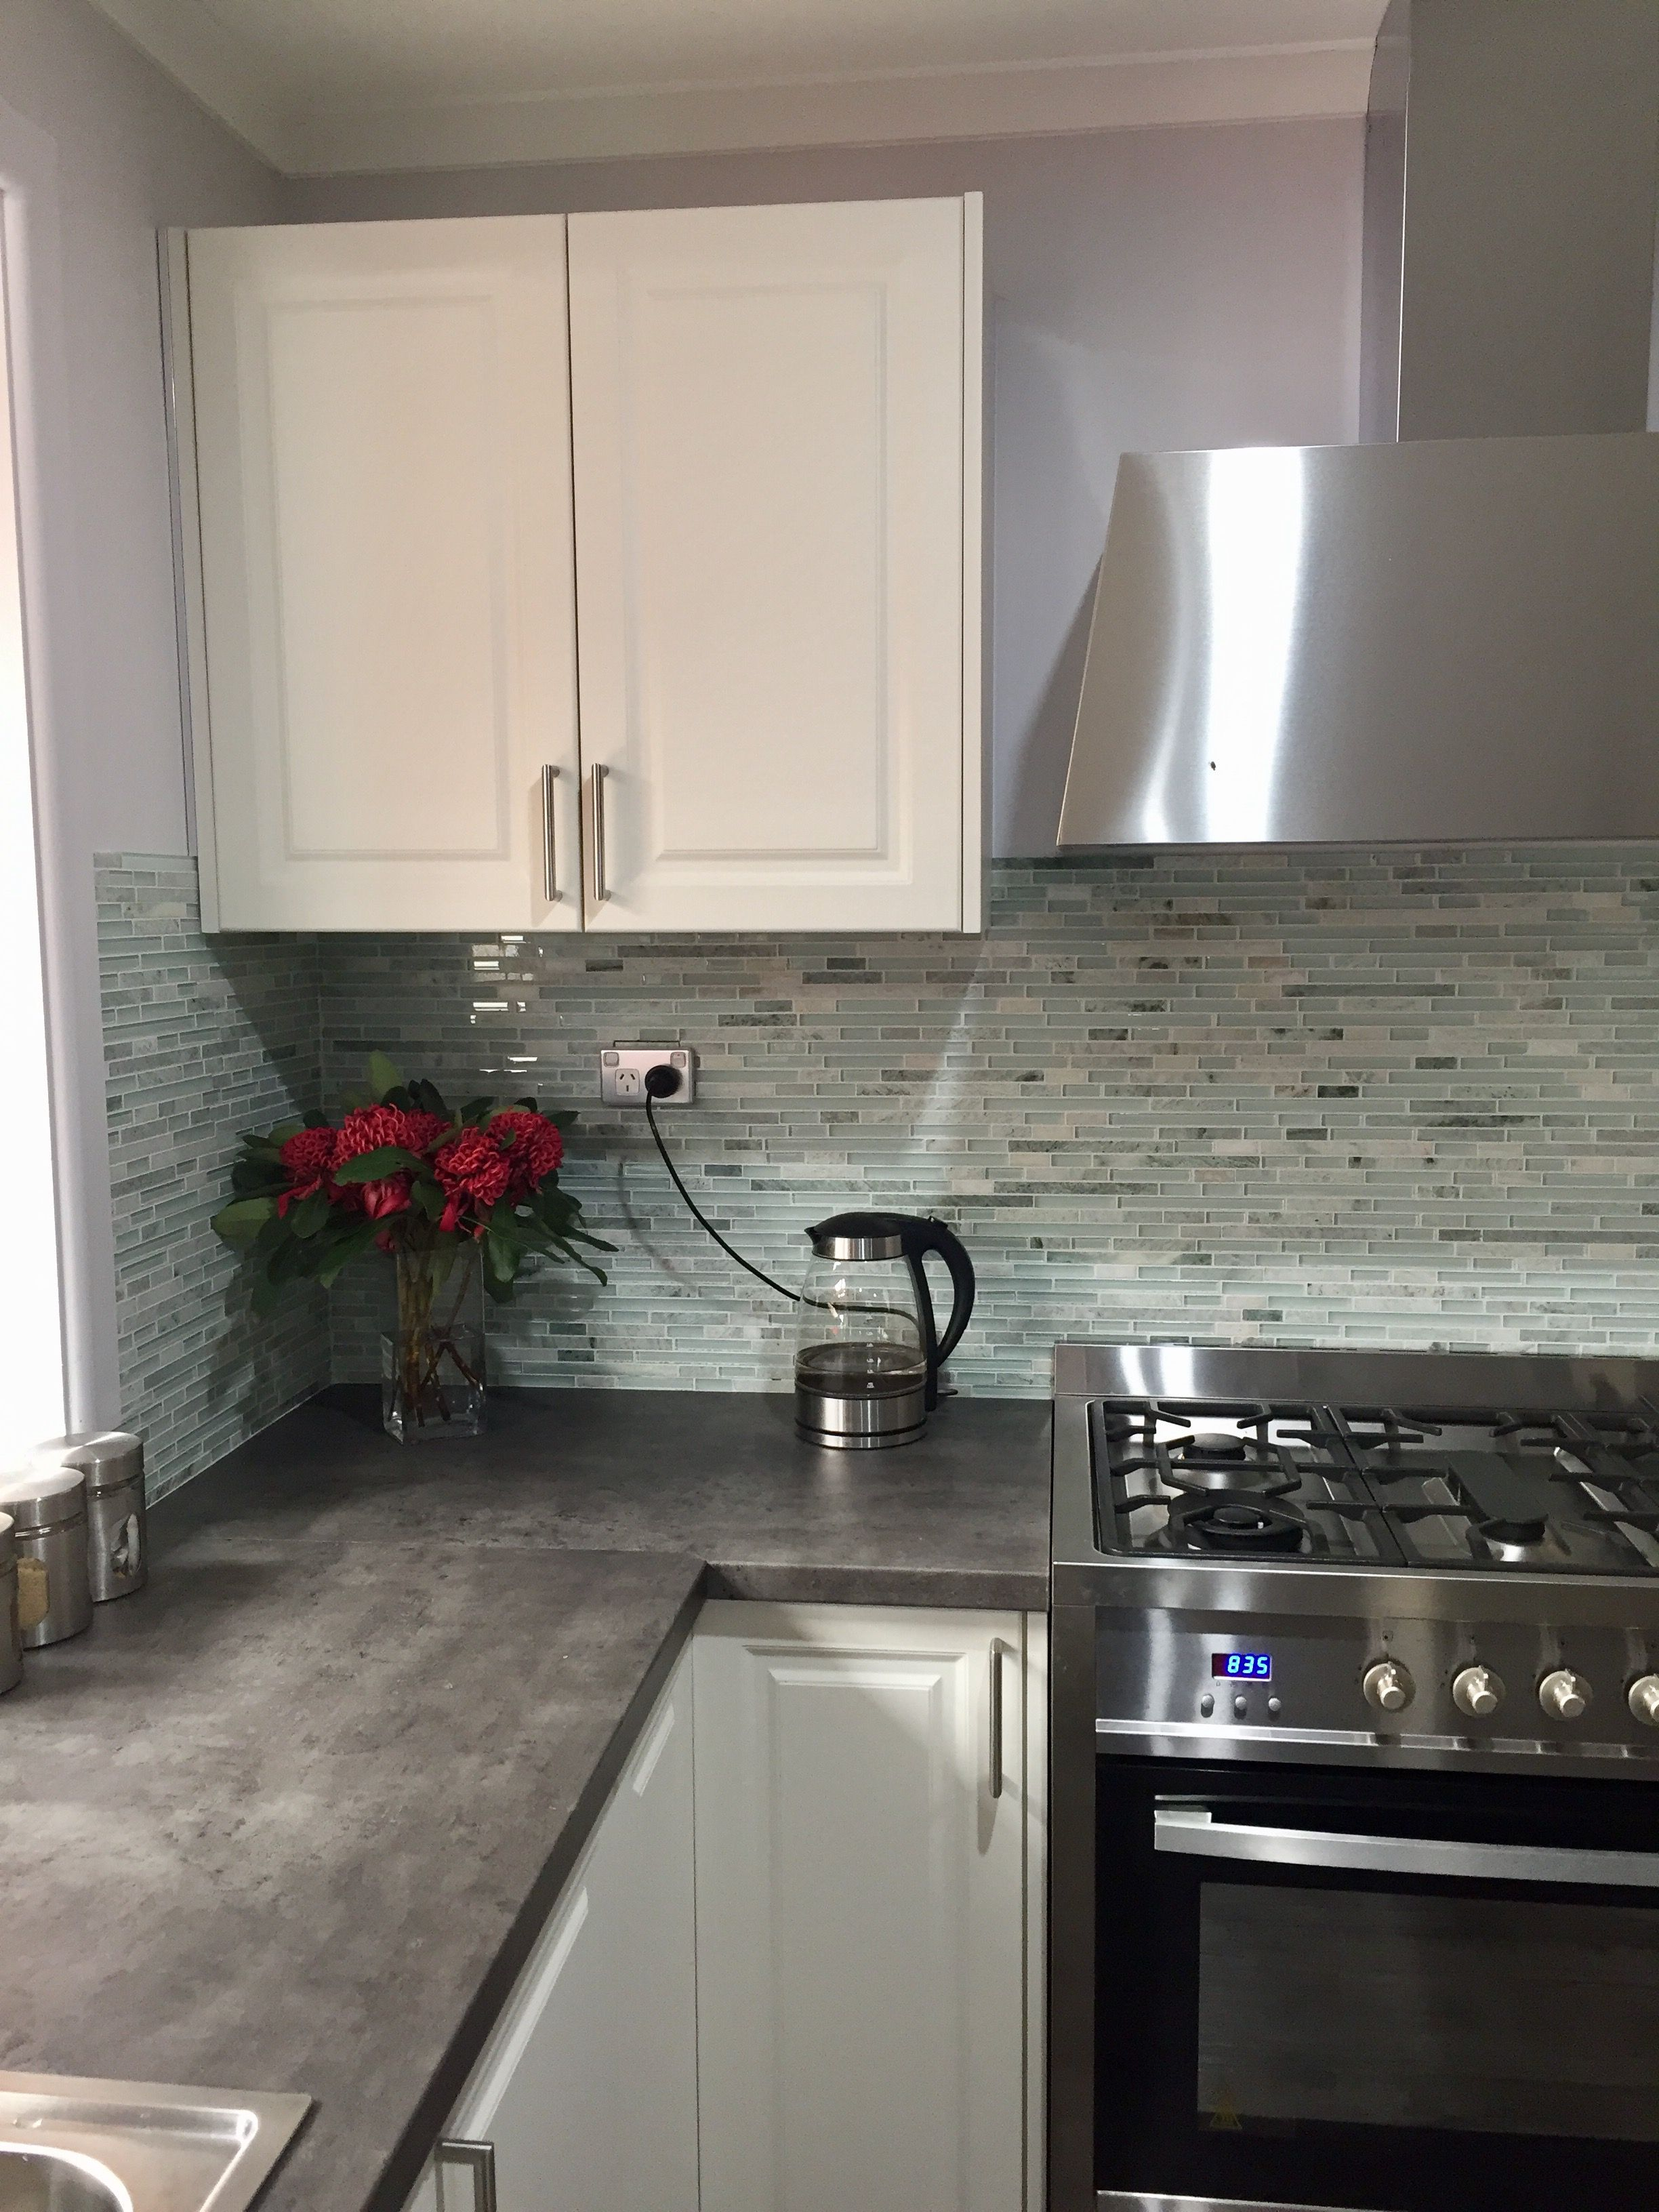 average cost of small kitchen remodel Kitchen remodel